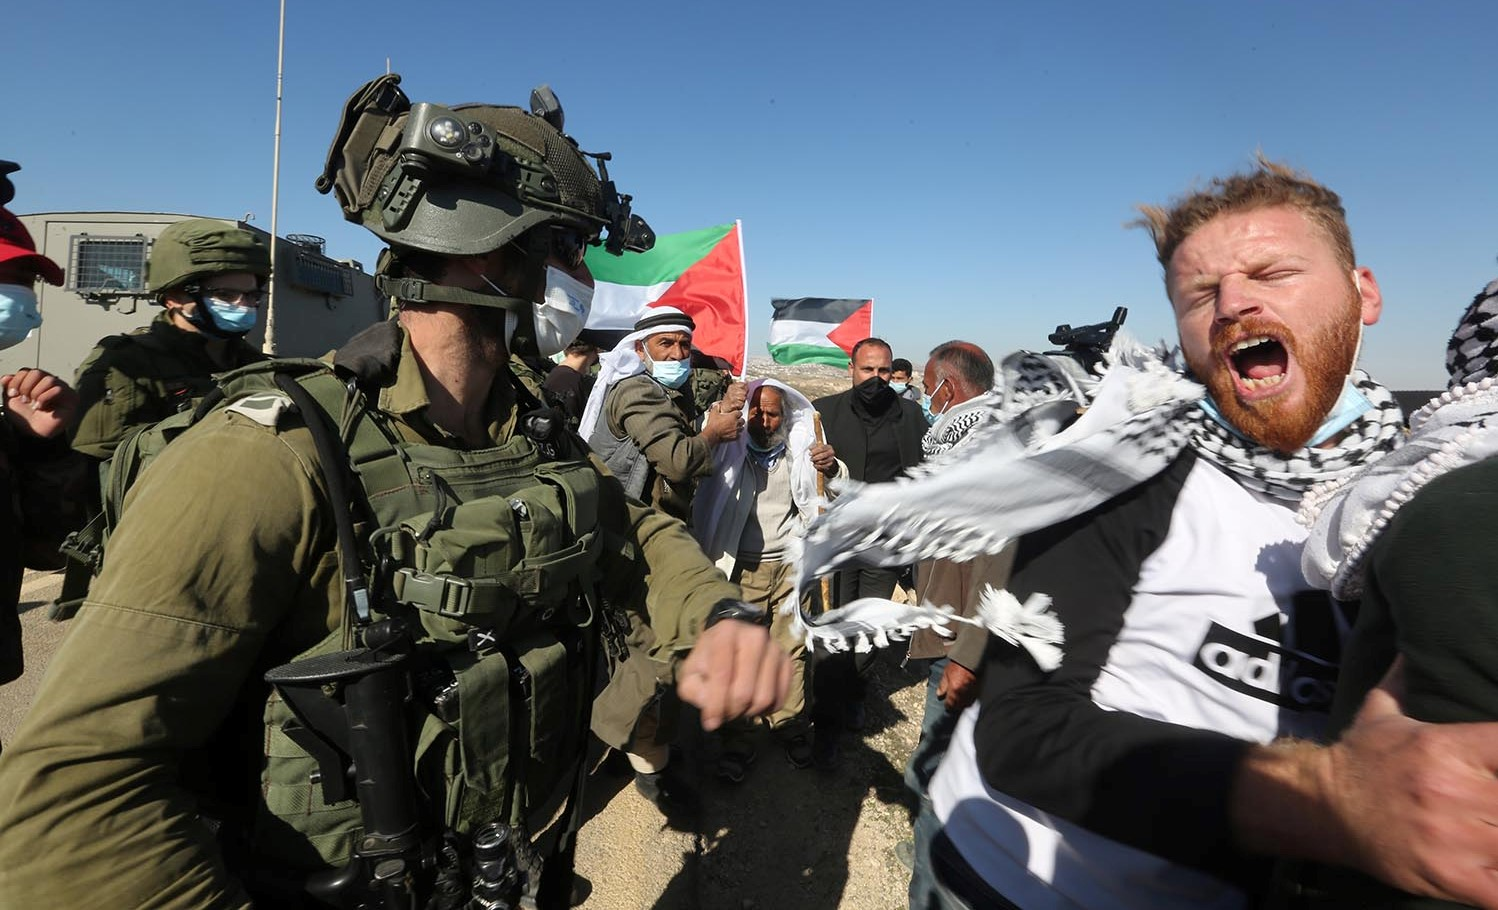 Israeli occupation forces confront protestors during a protest last Friday, January 8, in the village of Al-Rakeez where Haroun Abu Aram, 24, was shot at point blank range when he tried to recover a generator confiscated by soldiers.